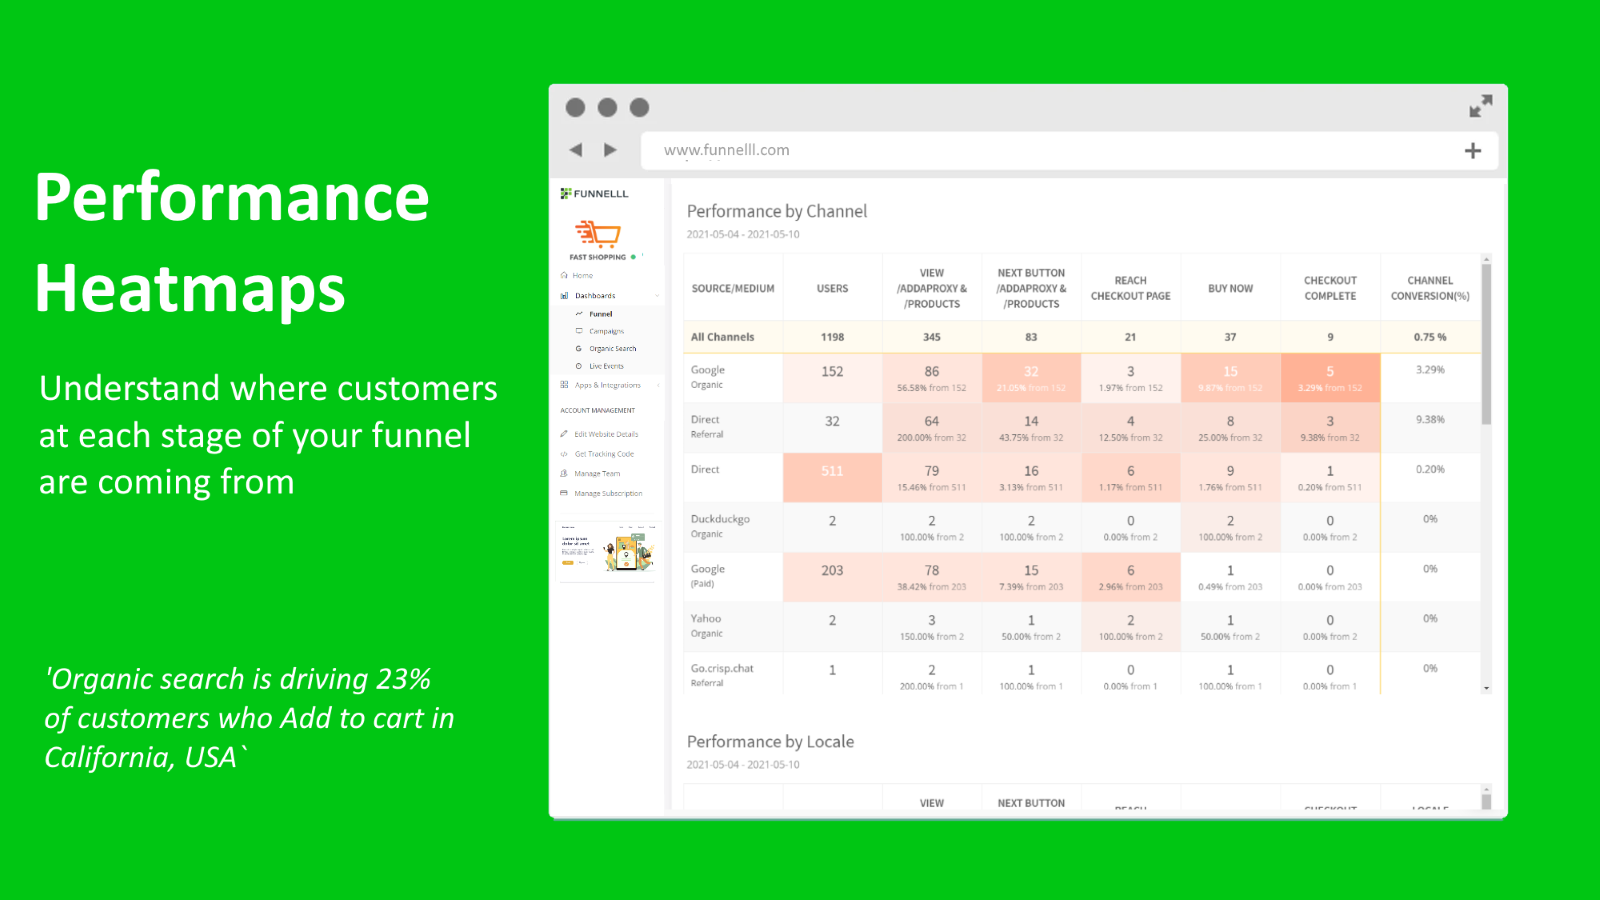 Funnel heatmaps by channel and location - Funnelll on Shopify